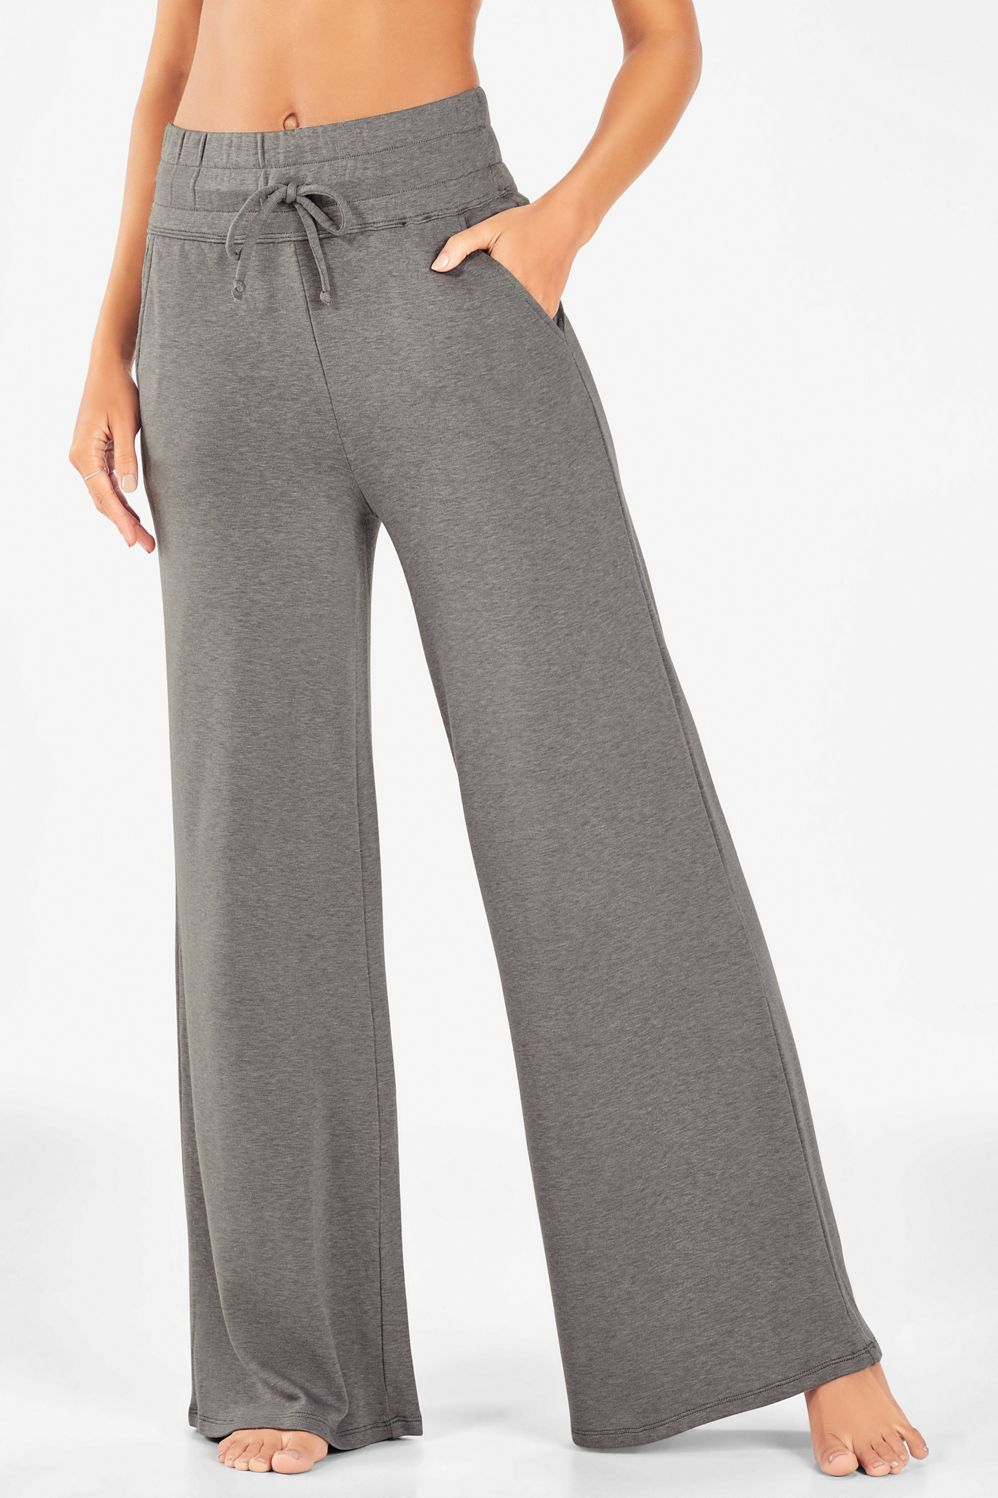 TRANSIT PAR SUCH Smart Casual Comfy Trousers Super Stretchy Size 2 UK 10 New